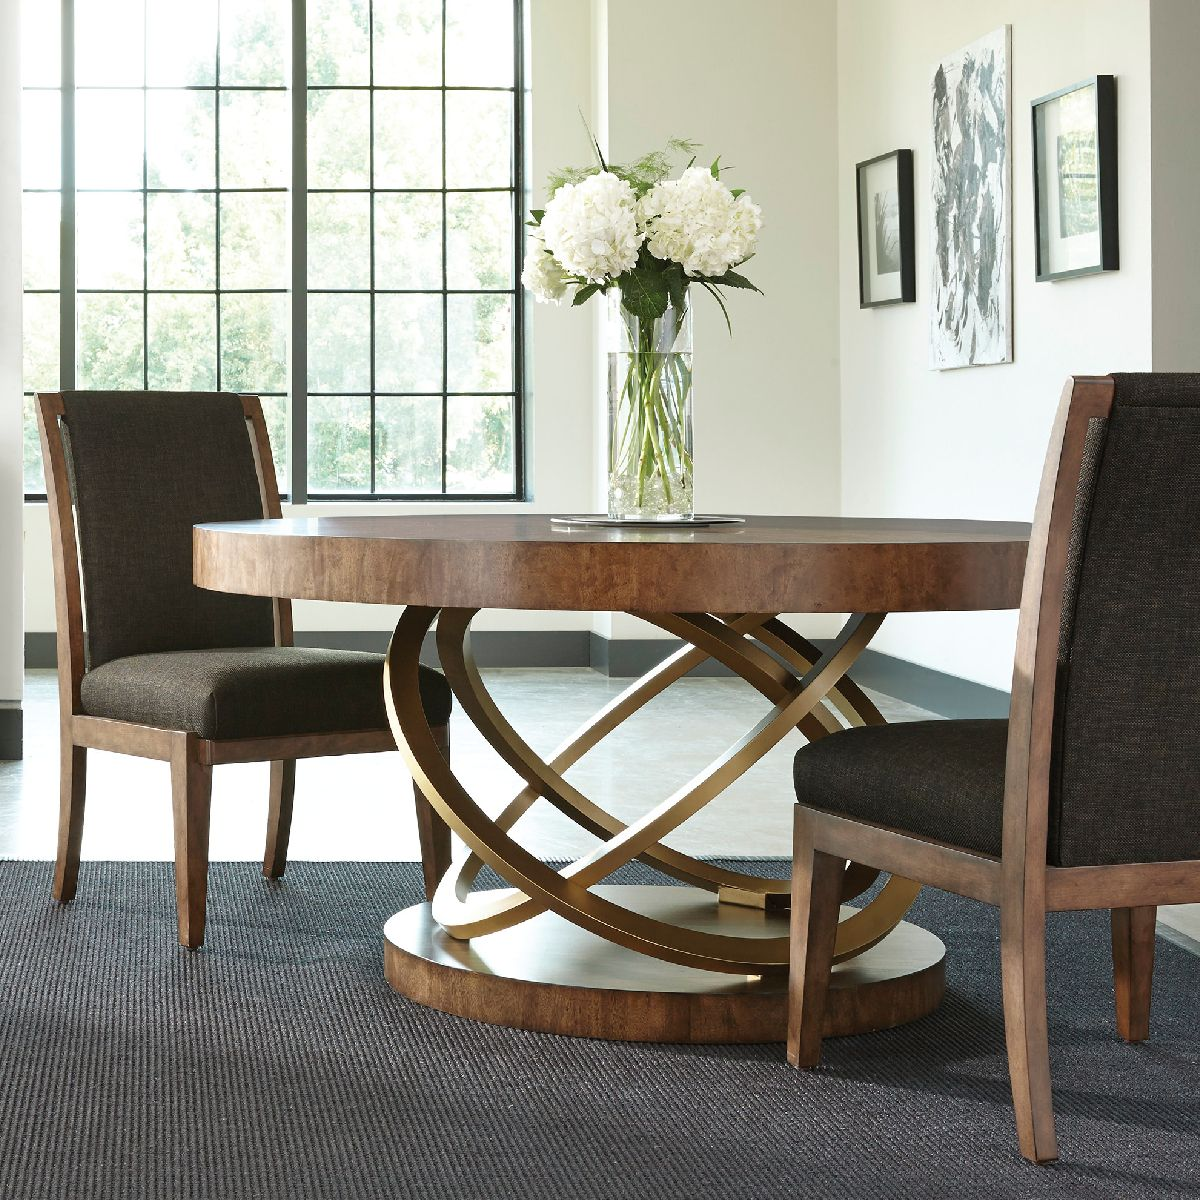 Put A Modern Twist On Your Dining Room The Round Dining Table Is Stunning Heritage Dining Room Furniture Design Inspiration